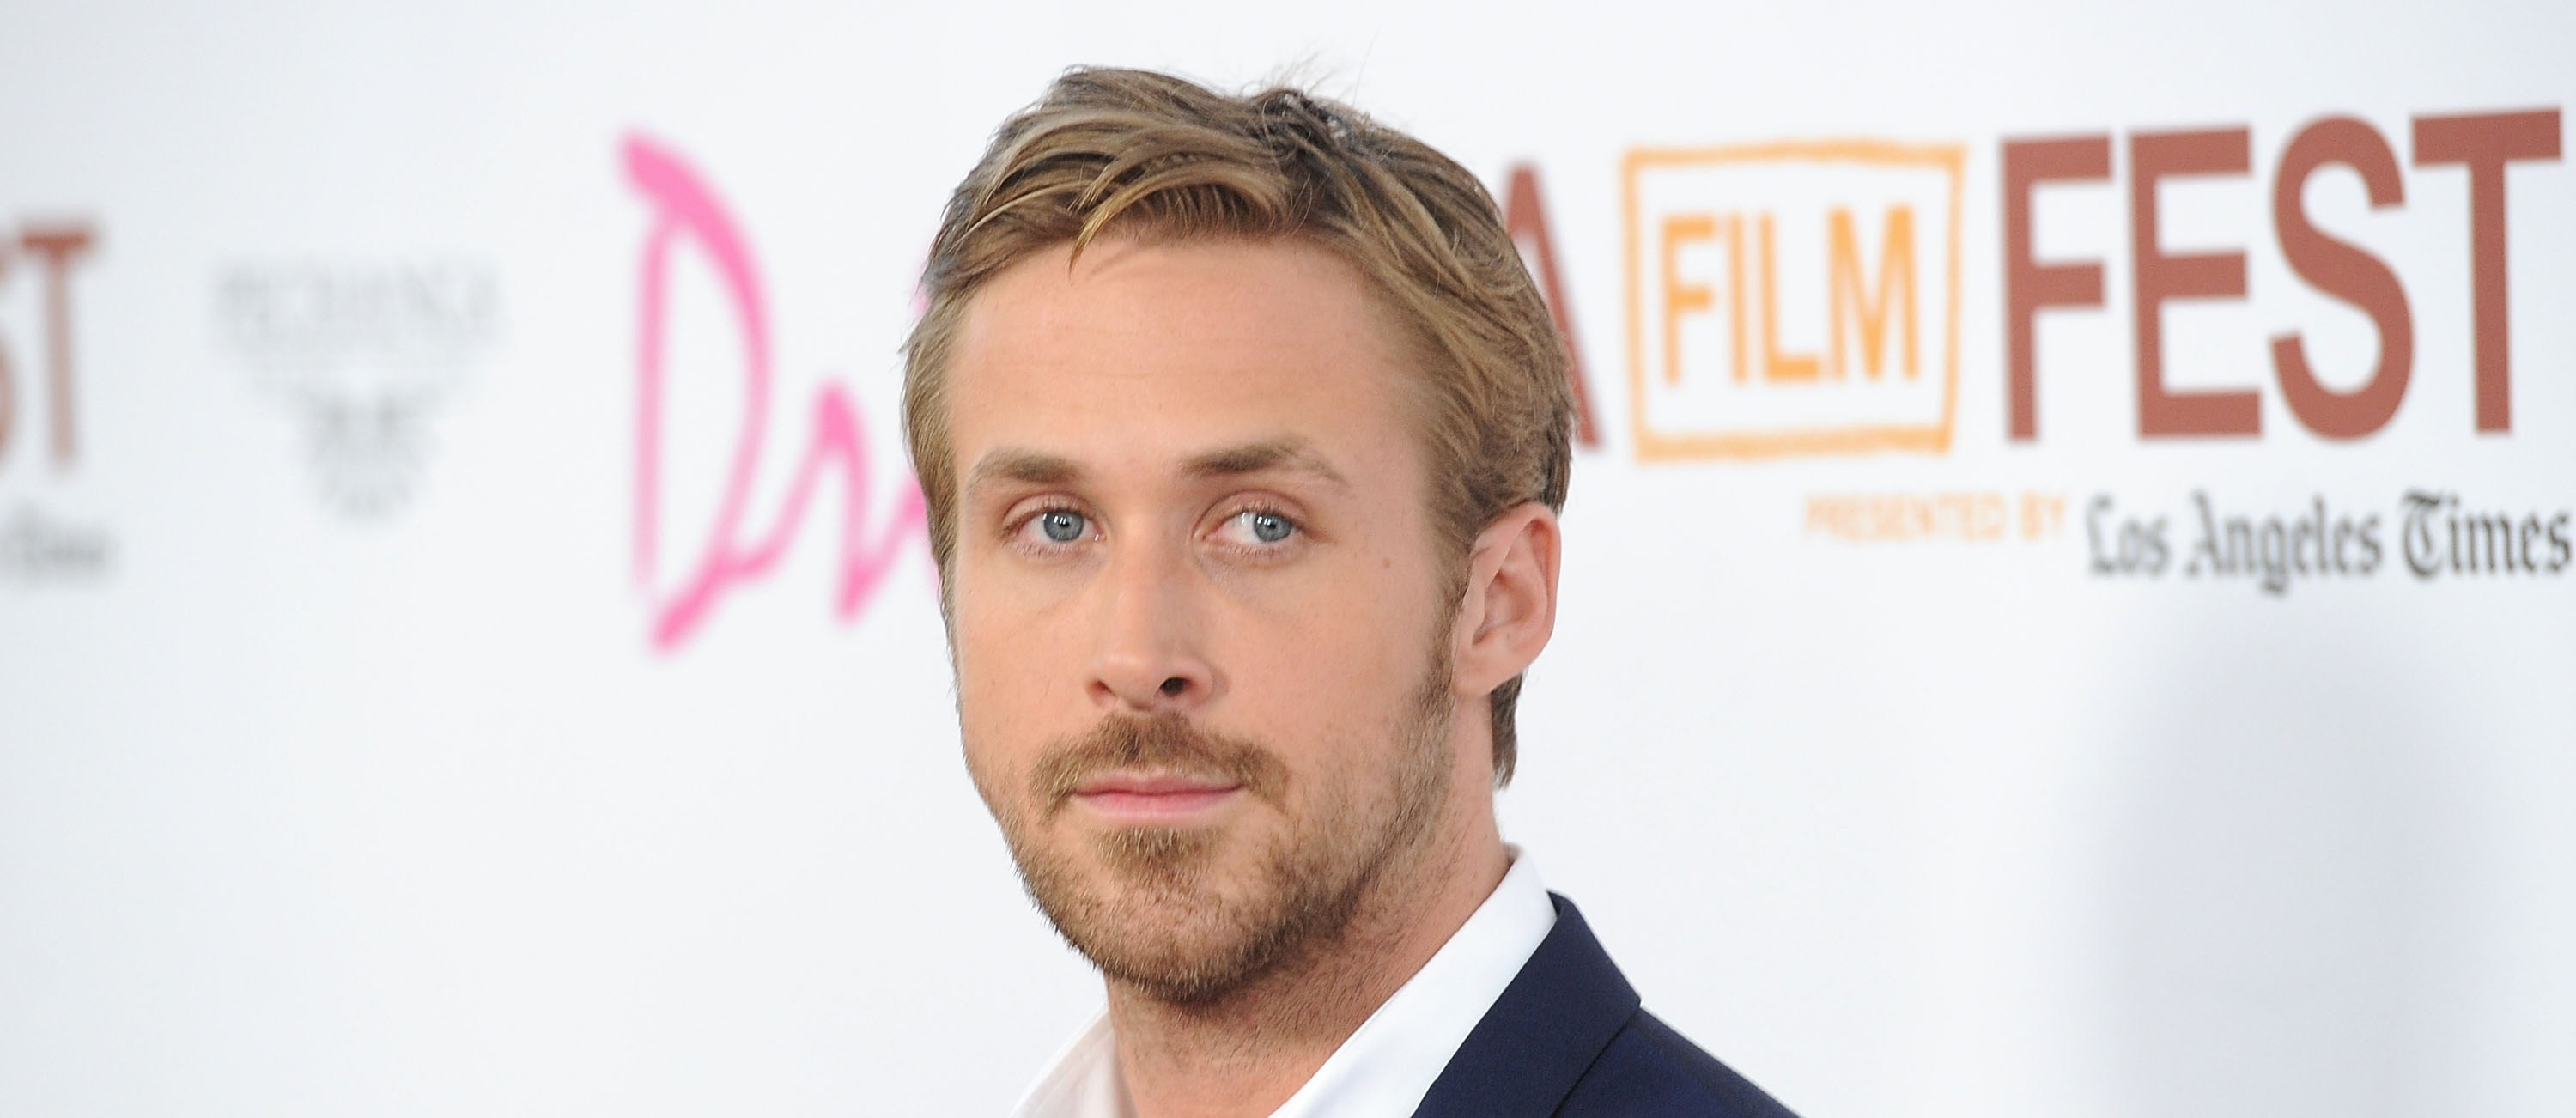 What Every Man Wants A Jawline Like Ryan Gosling Times2